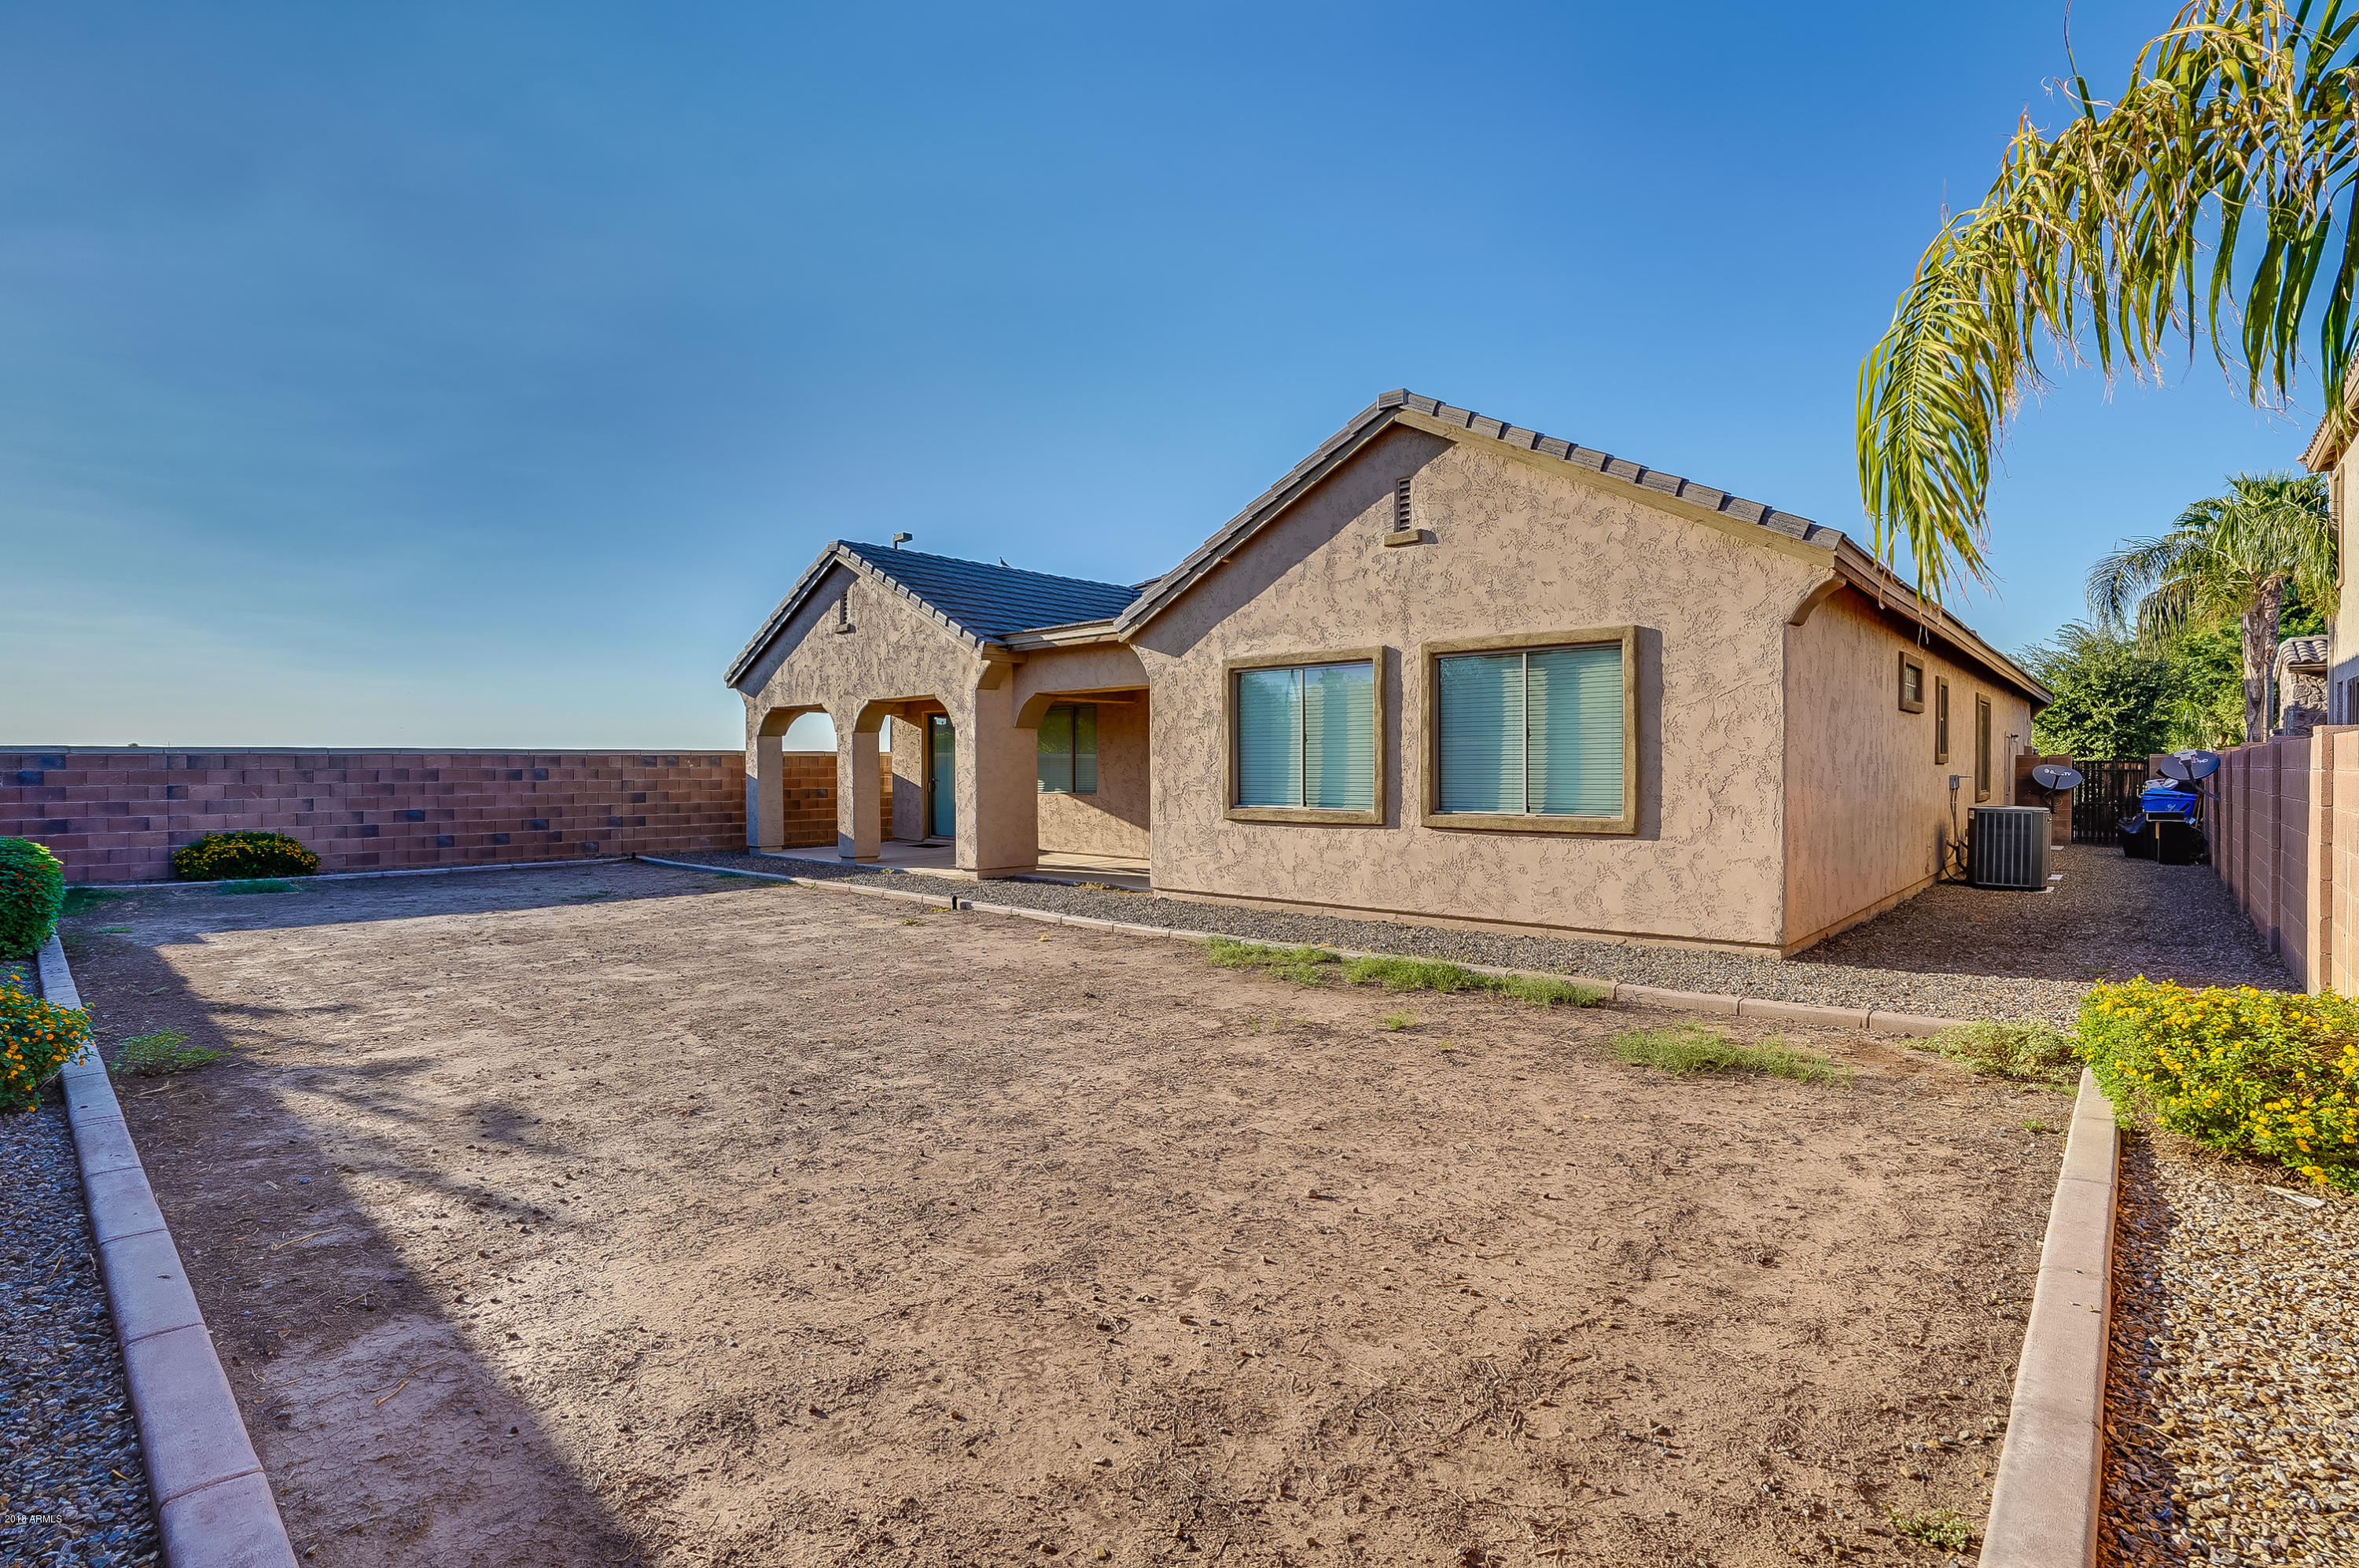 MLS 5826597 2811 E Blue Sage Road, Gilbert, AZ 85297 Stratland Estates